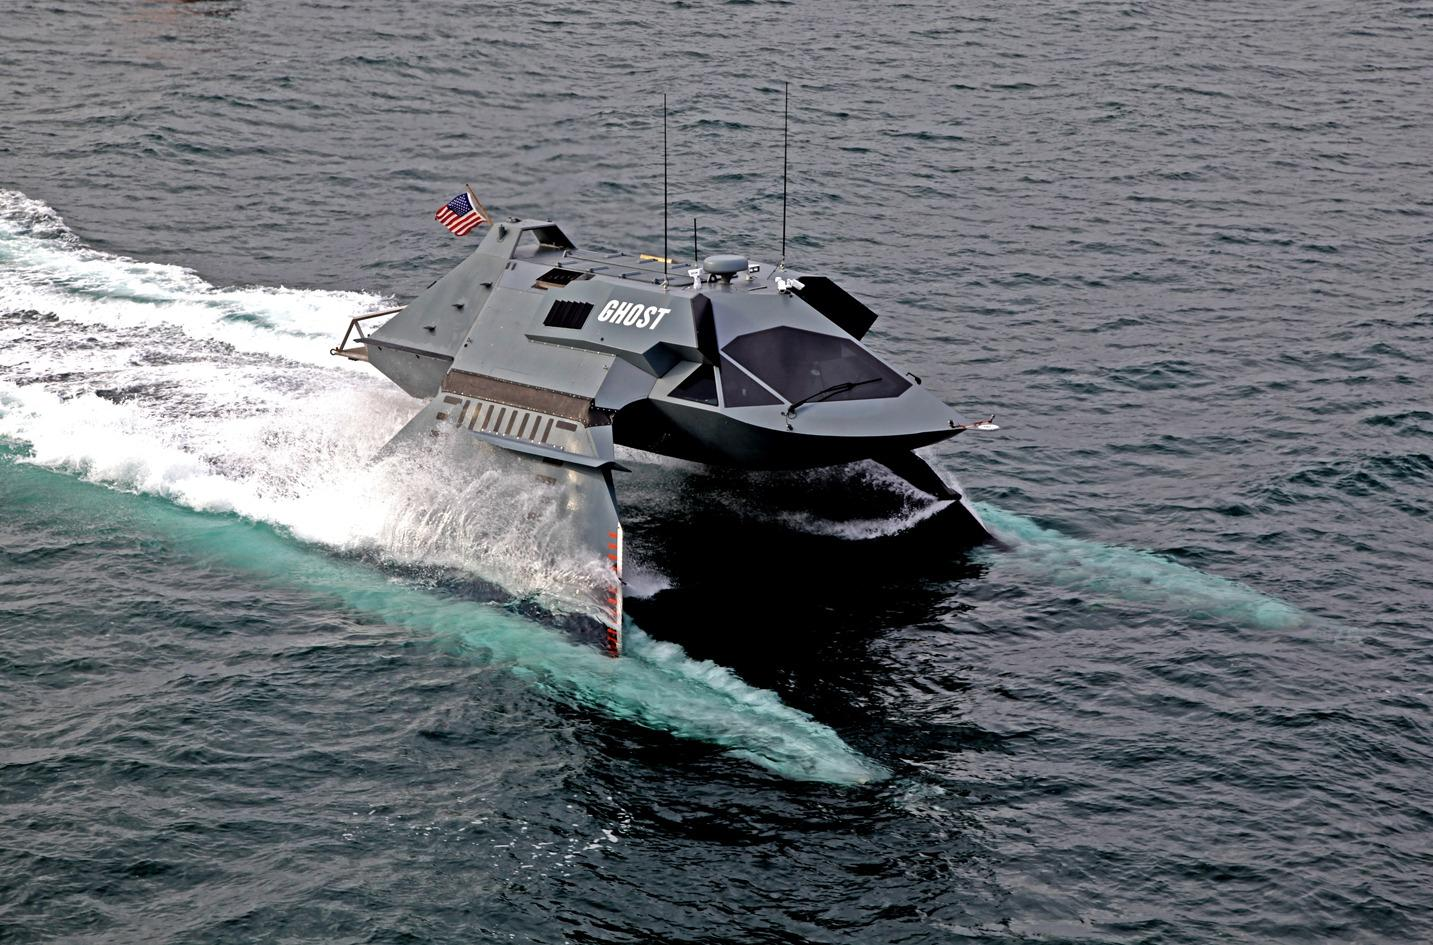 60 juliet marine 2009 ghost for sale in portsmouth  new hampshire  us